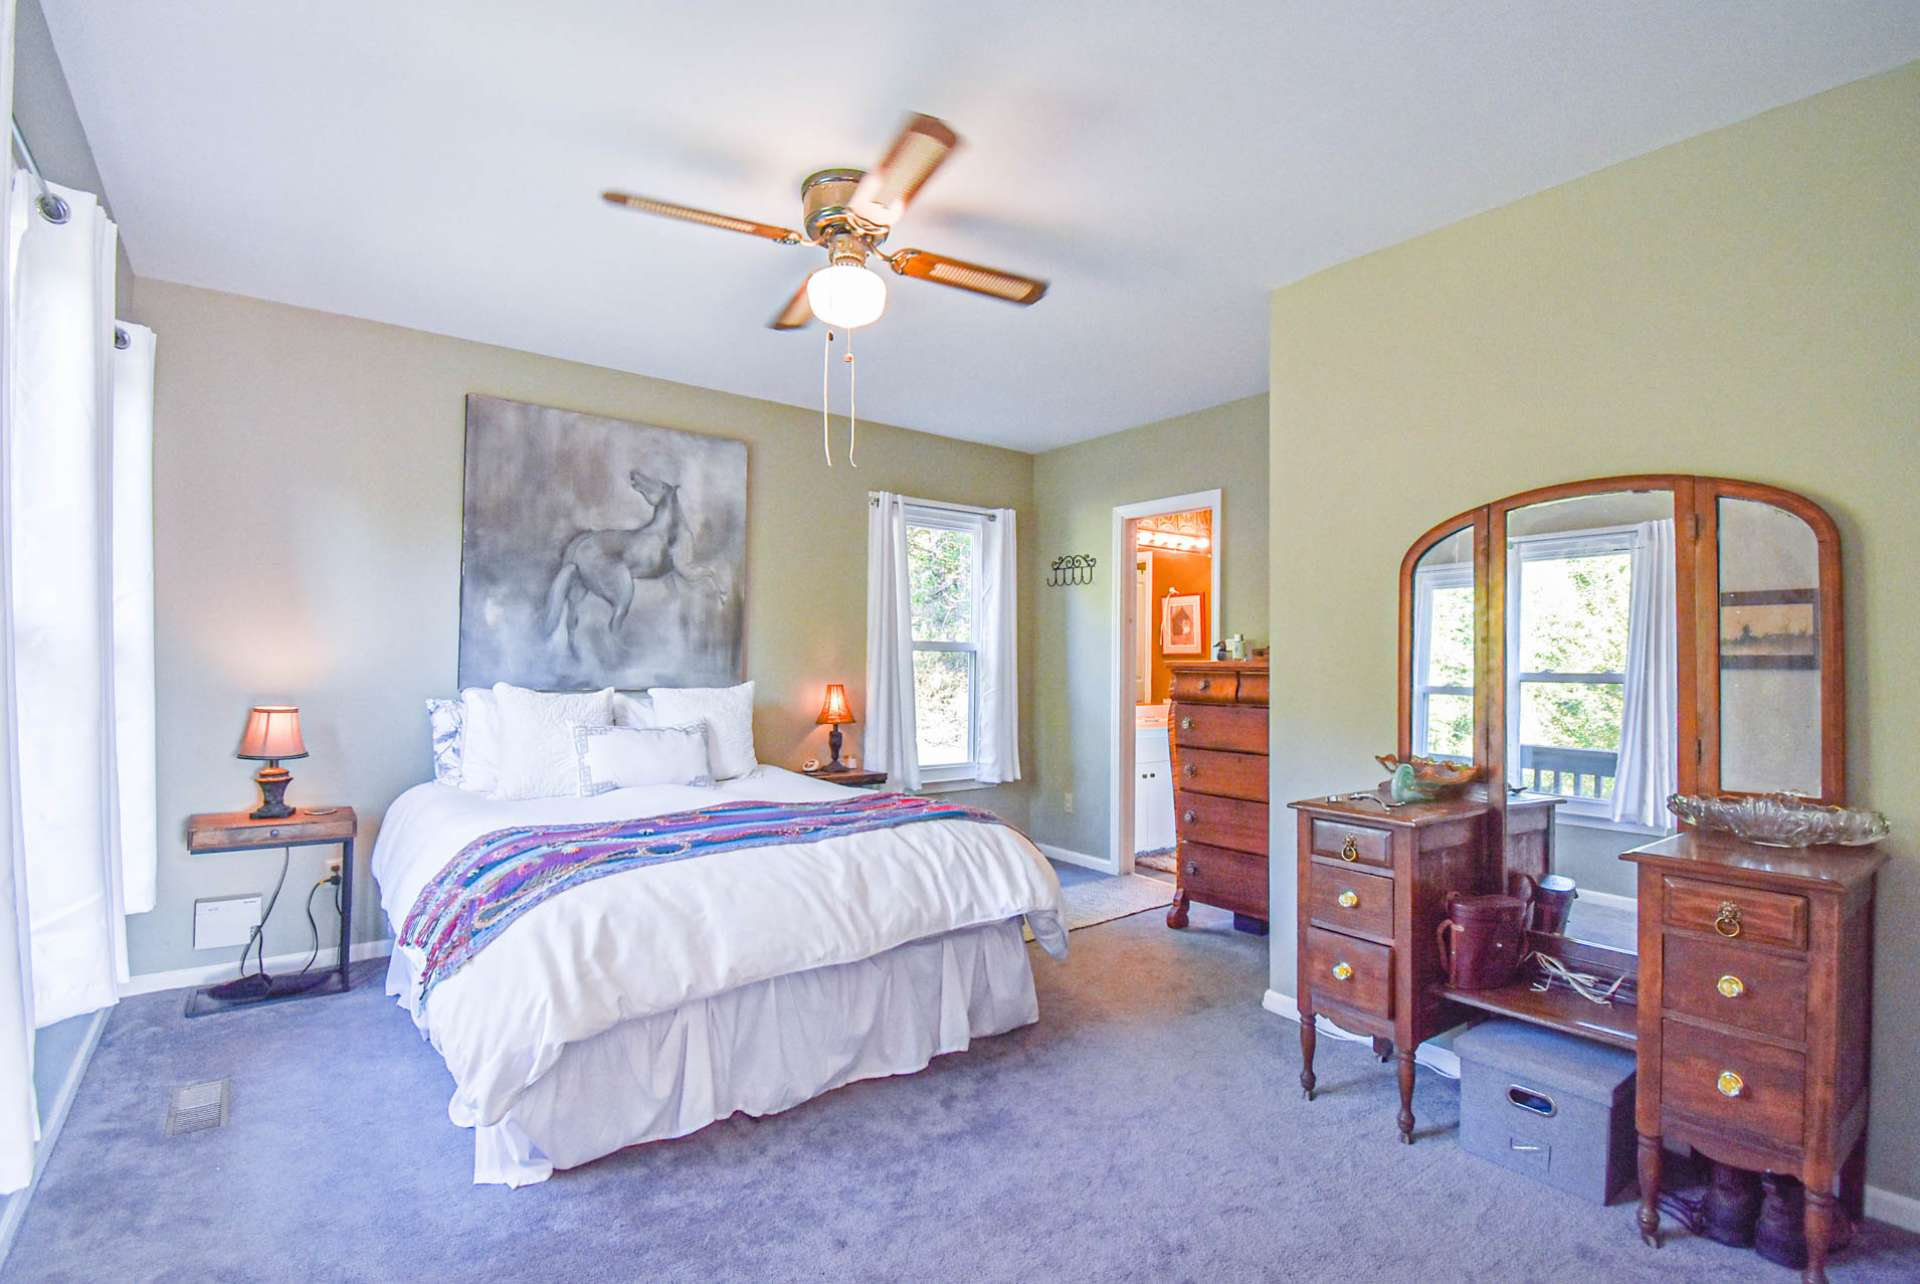 The main level offers a master suite option. This spacious bedroom features lots of light, comfortable carpeted floor, and a full bath.